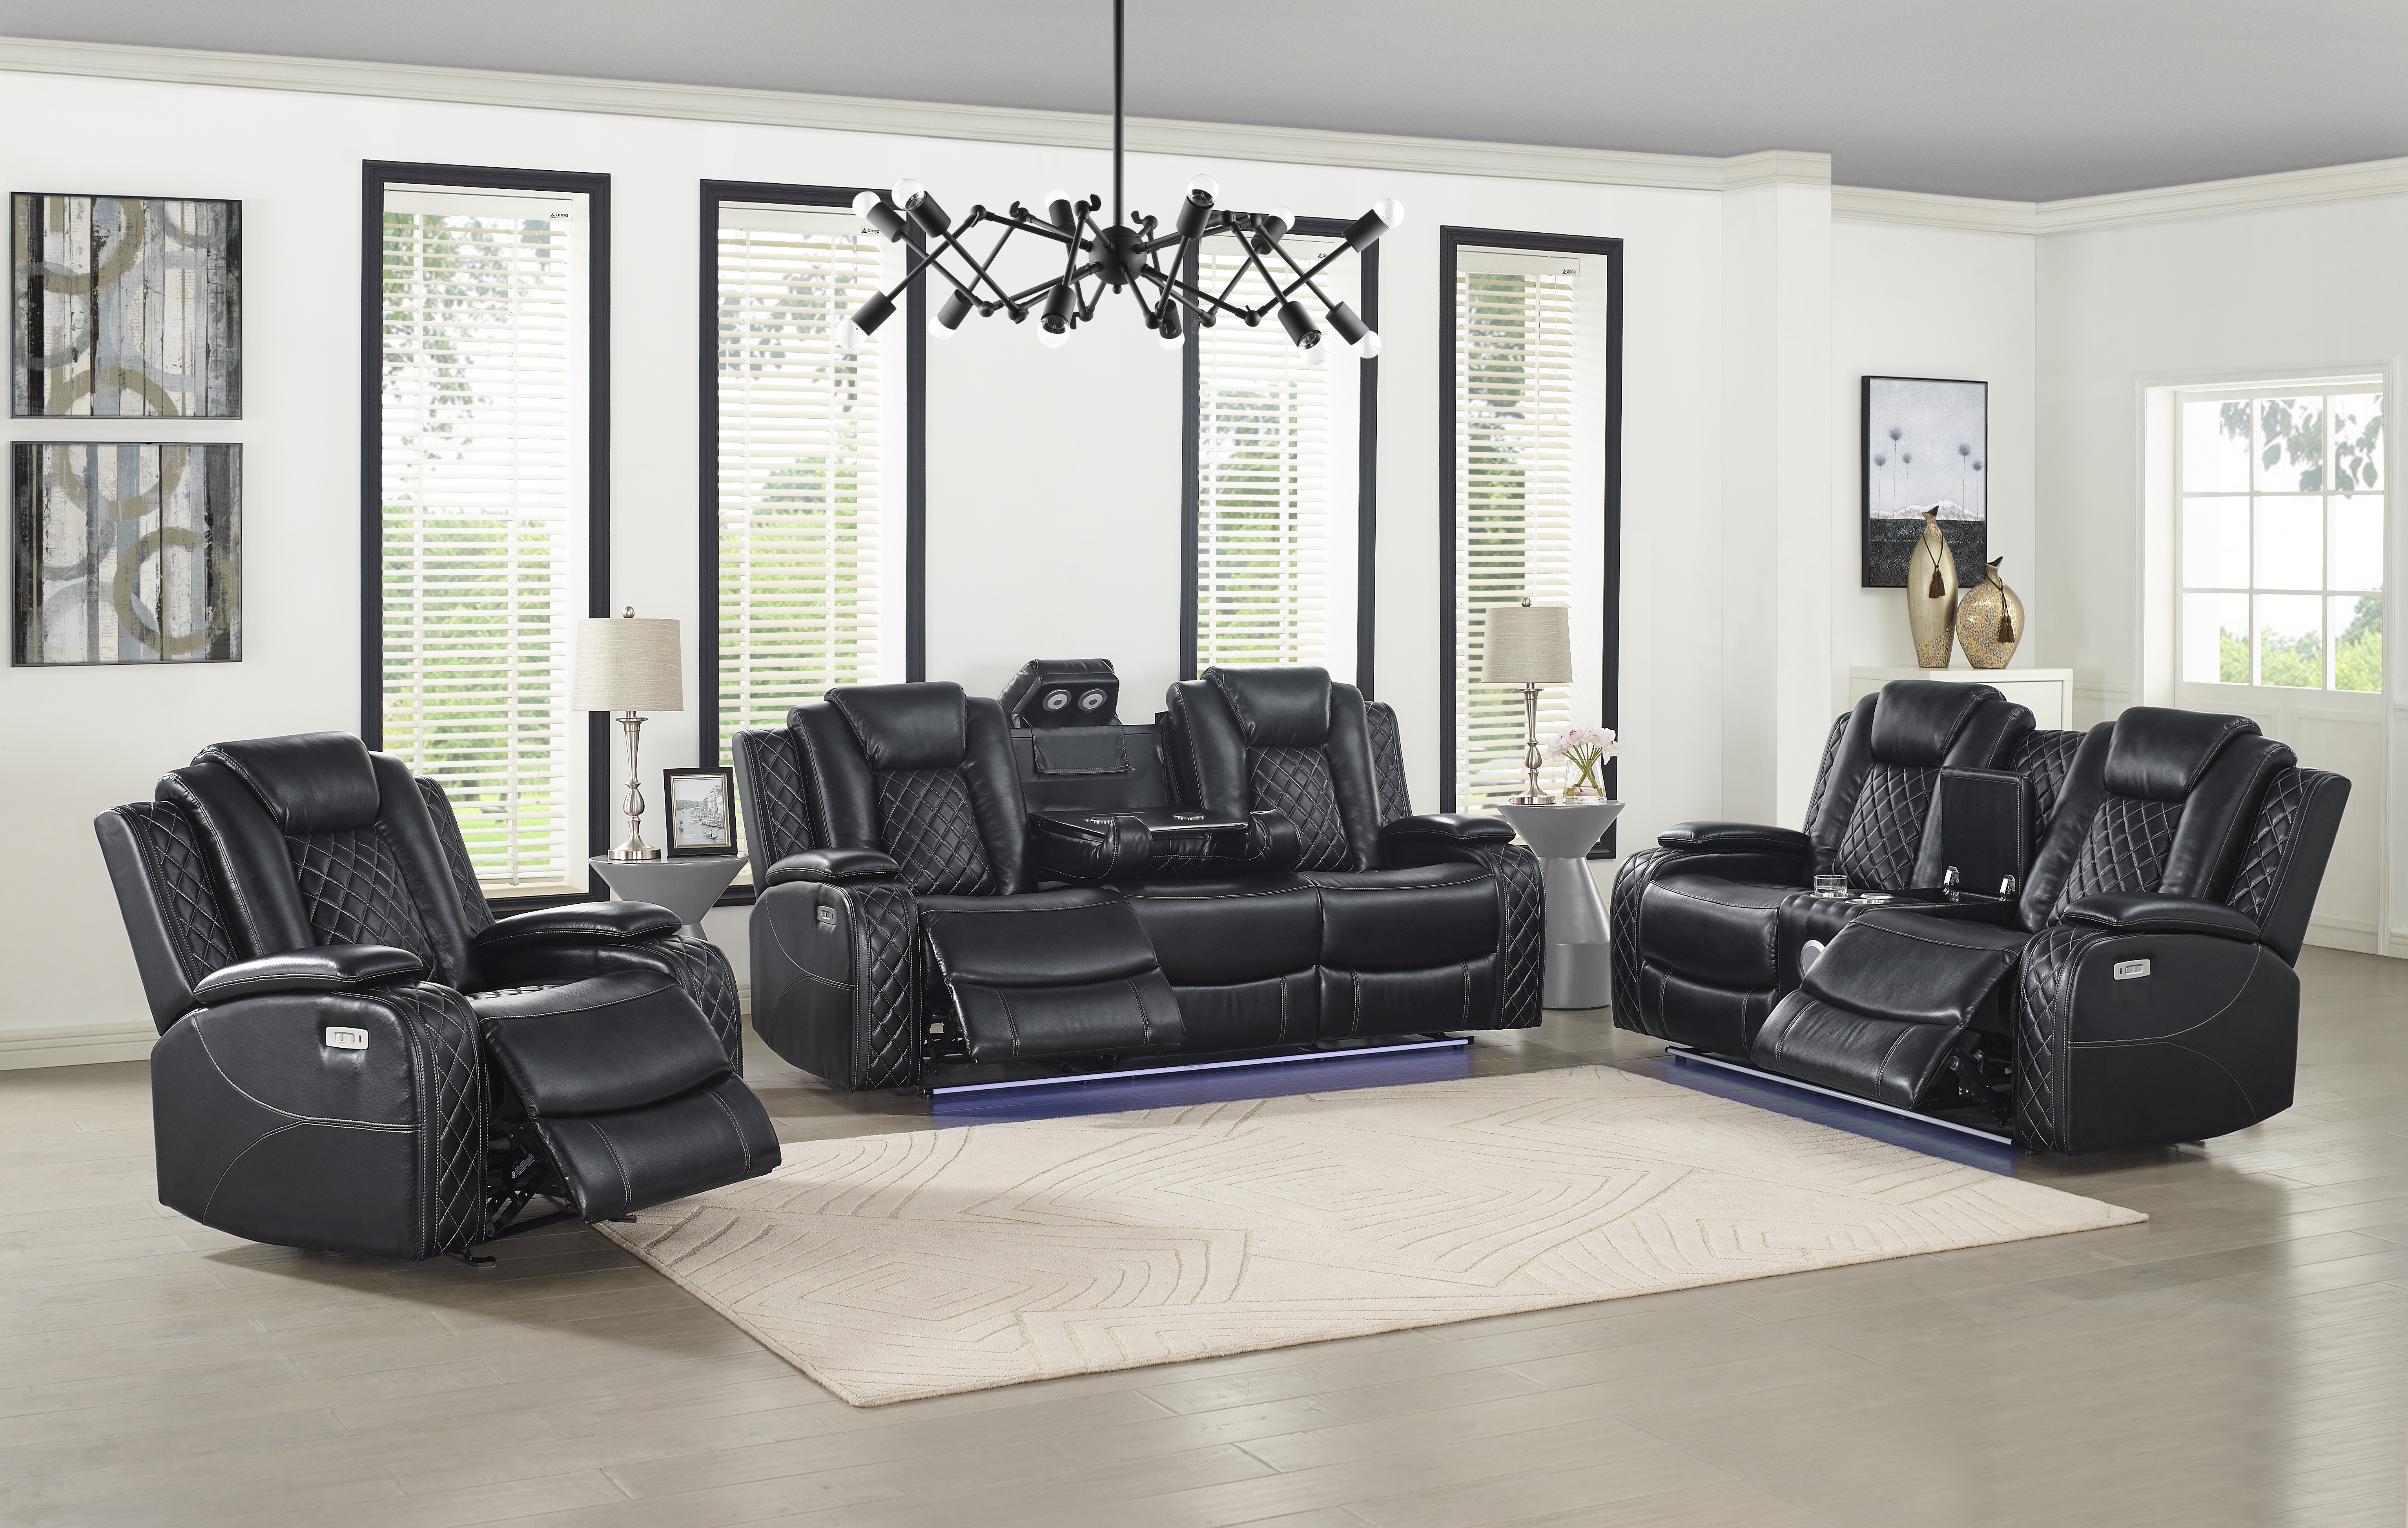 Orion Recliner by New Classic at A1 Furniture & Mattress